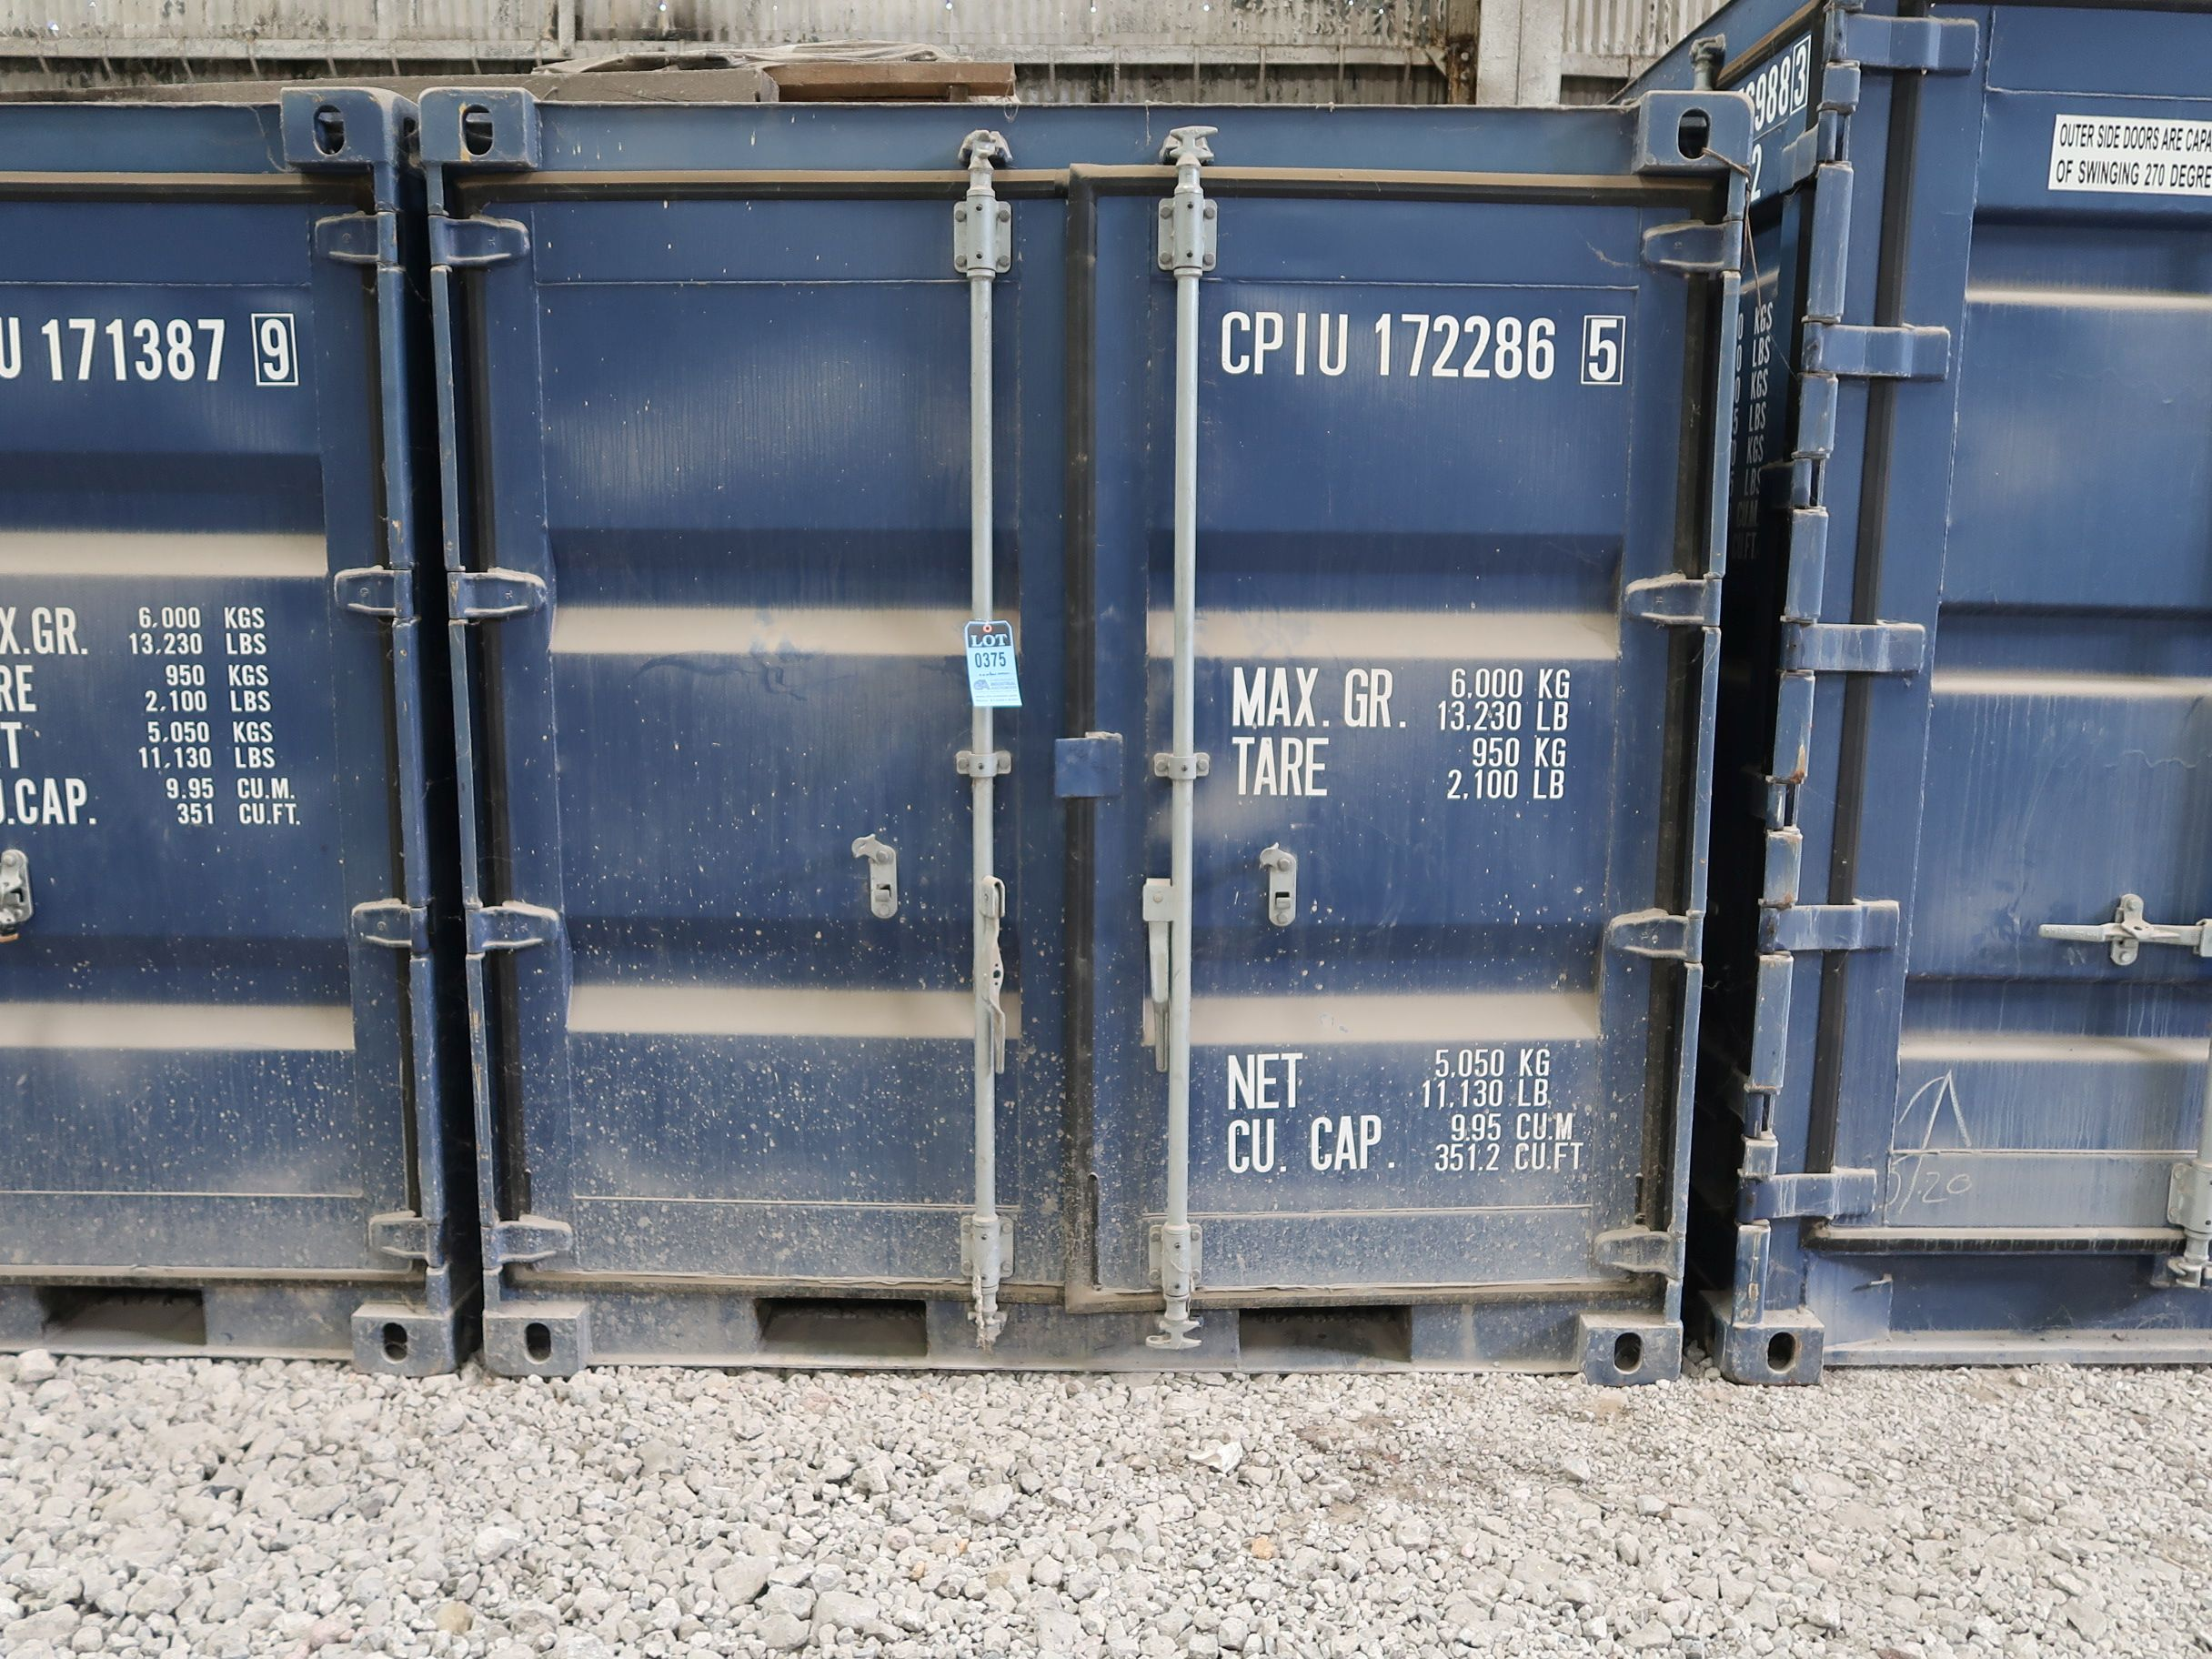 Lot 375 - 7' WIDE X 8' LONG CONTAINER PROVIDER INTL CONEX STORAGE CONTAINER WITH STANDARD DOOR, 351 CU. FT.